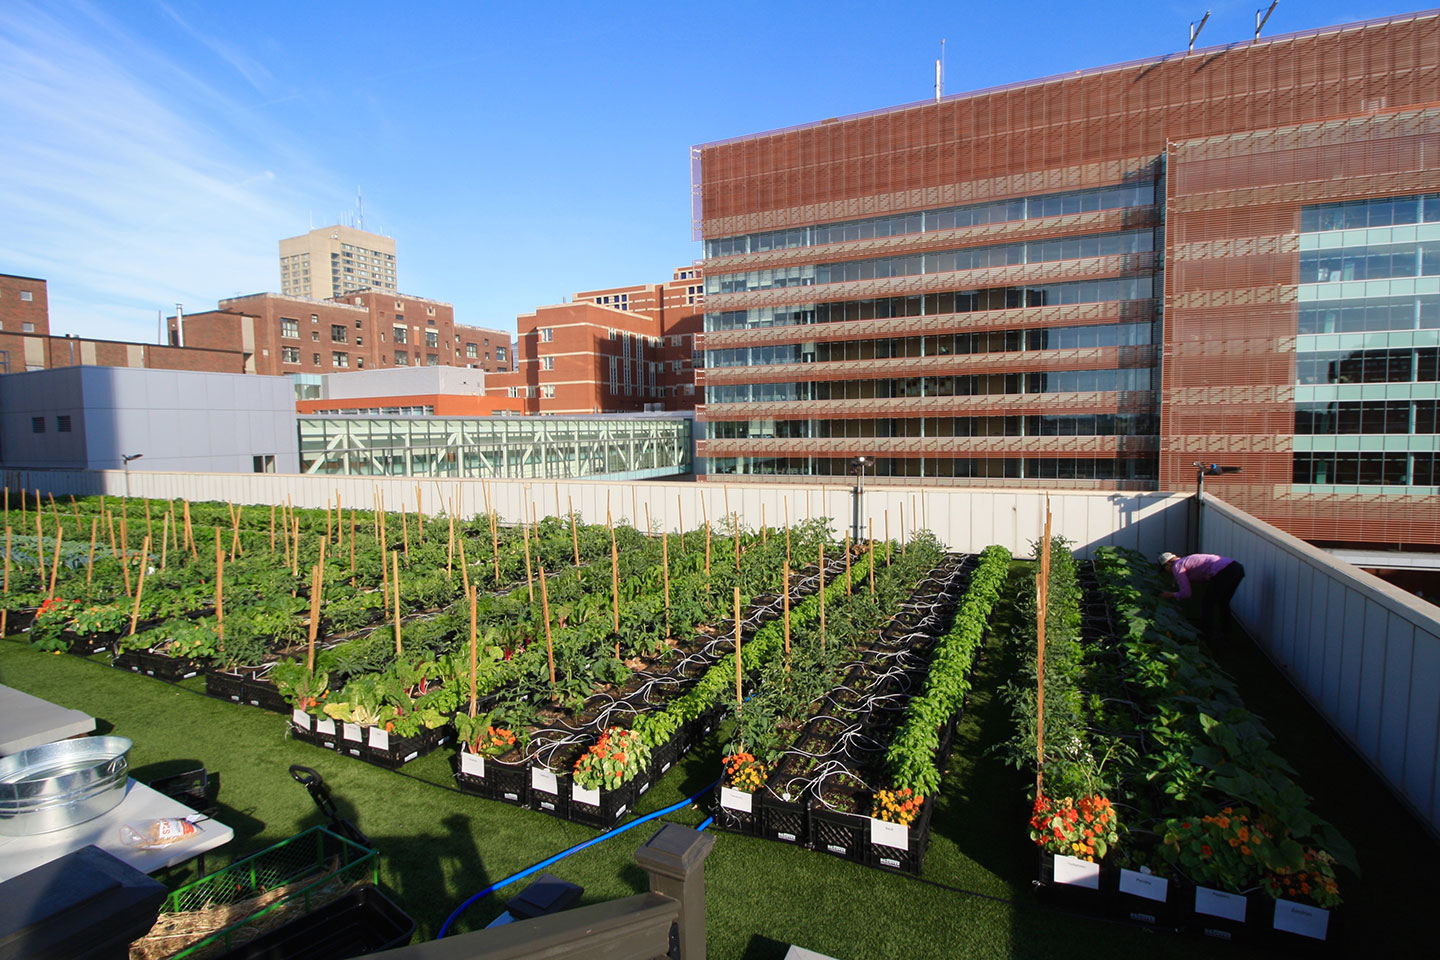 Boston Medical Center Rooftop Farm Featured Image